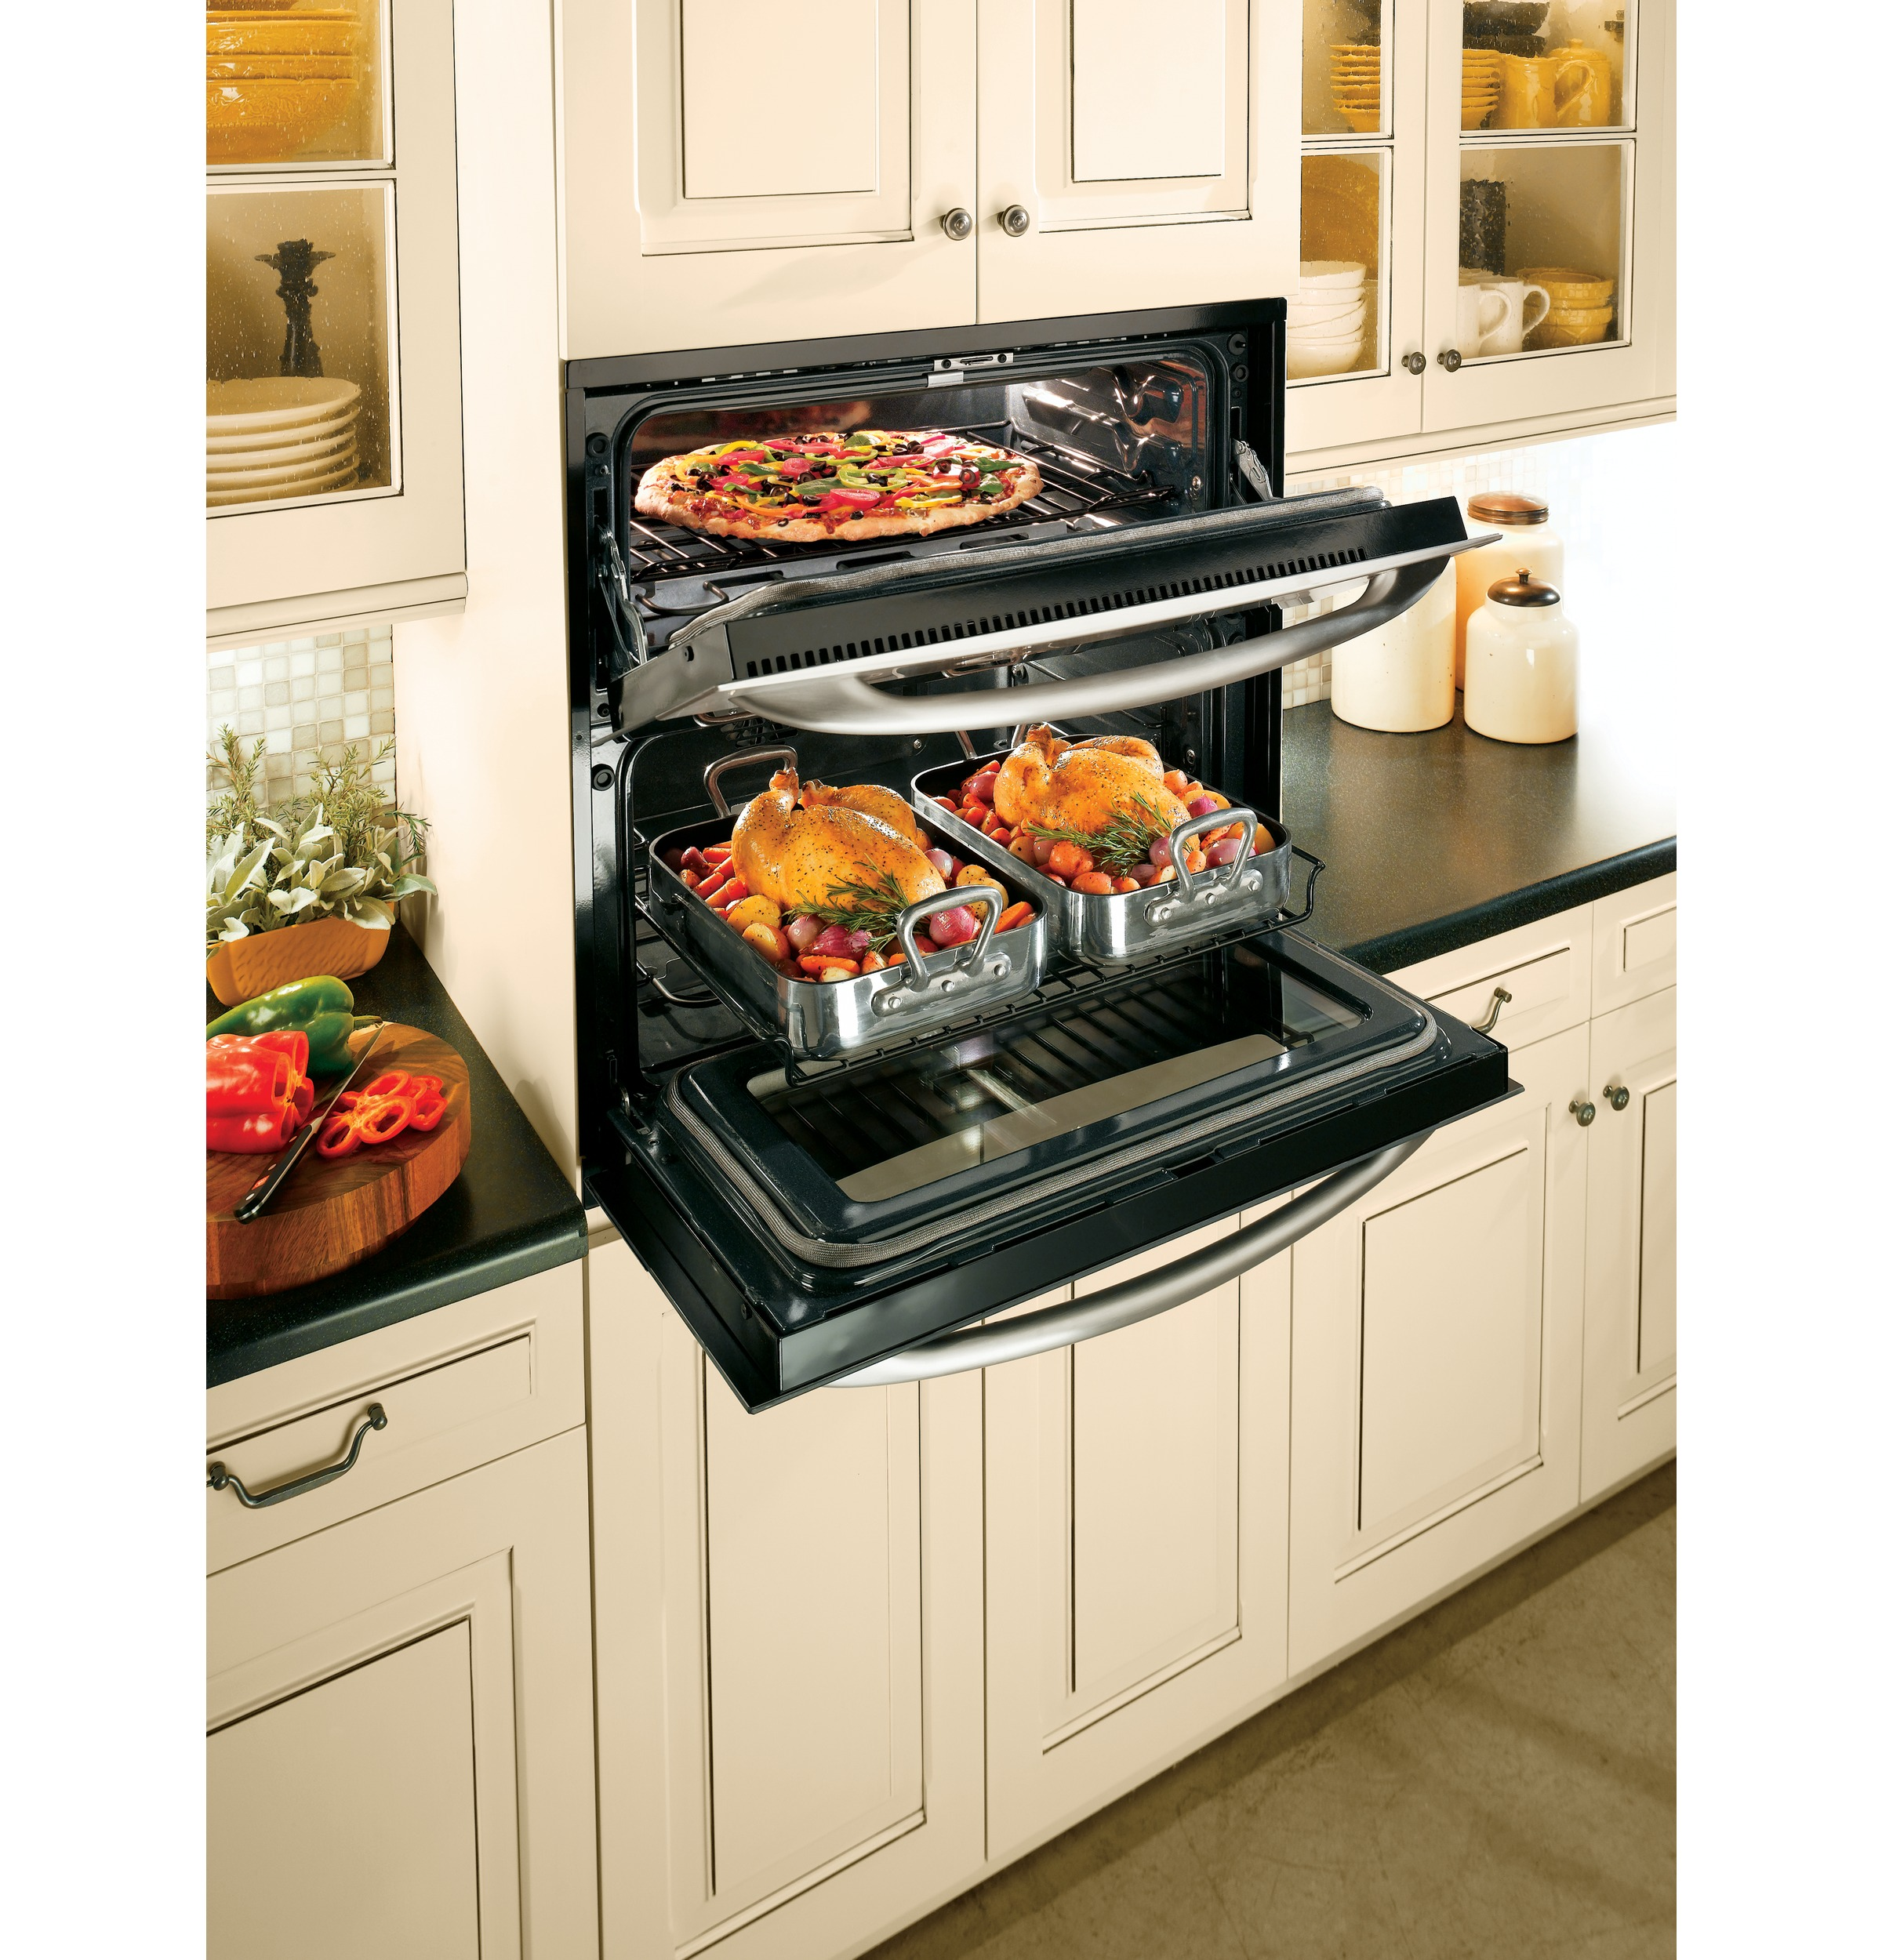 Wall oven under cooktop - Product Image Product Image Product Image Product Image